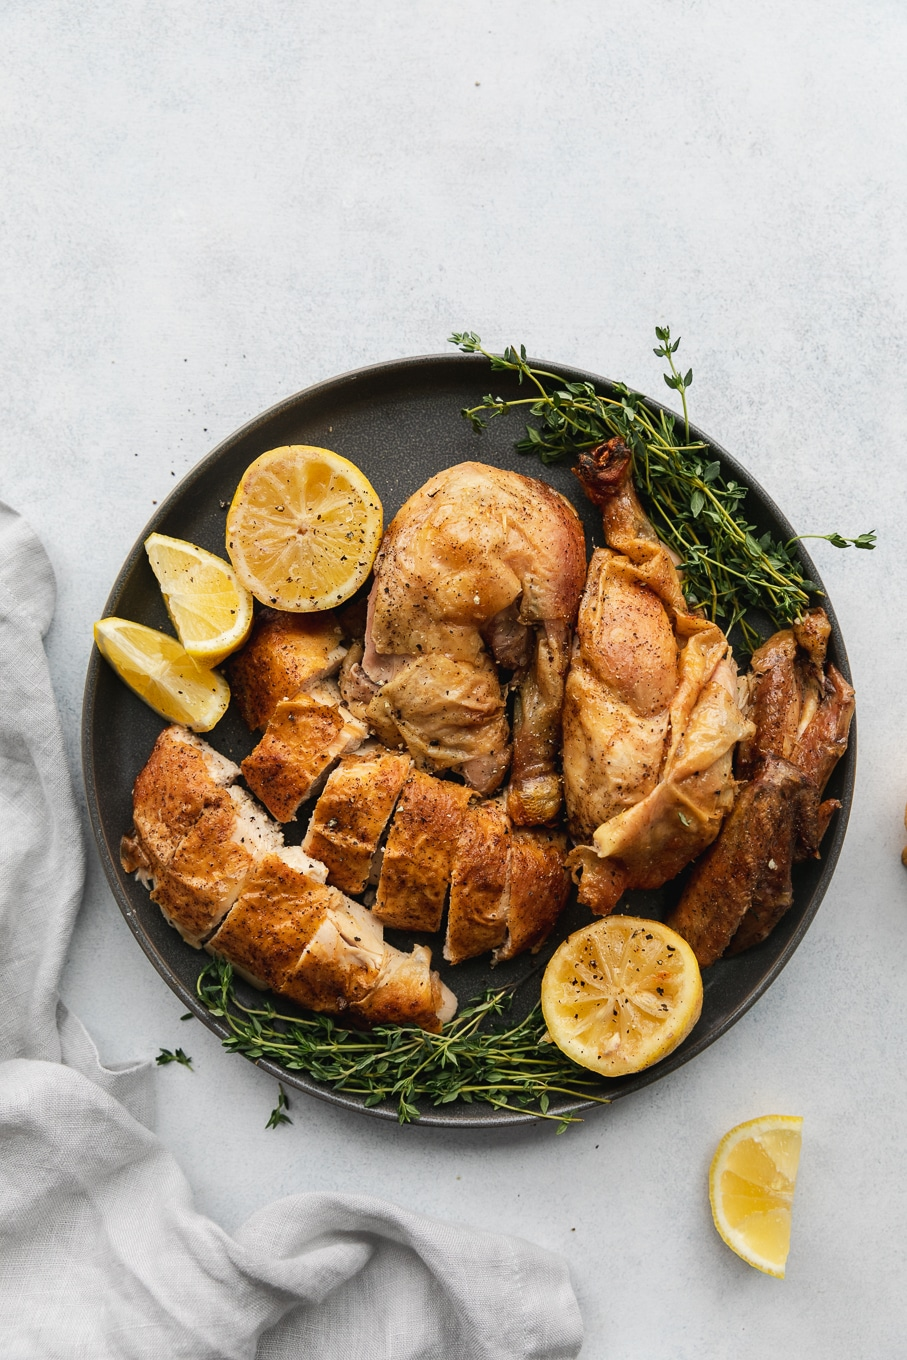 Overhead shot of a plate of roasted chicken garnished with thyme sprigs and lemon wedges